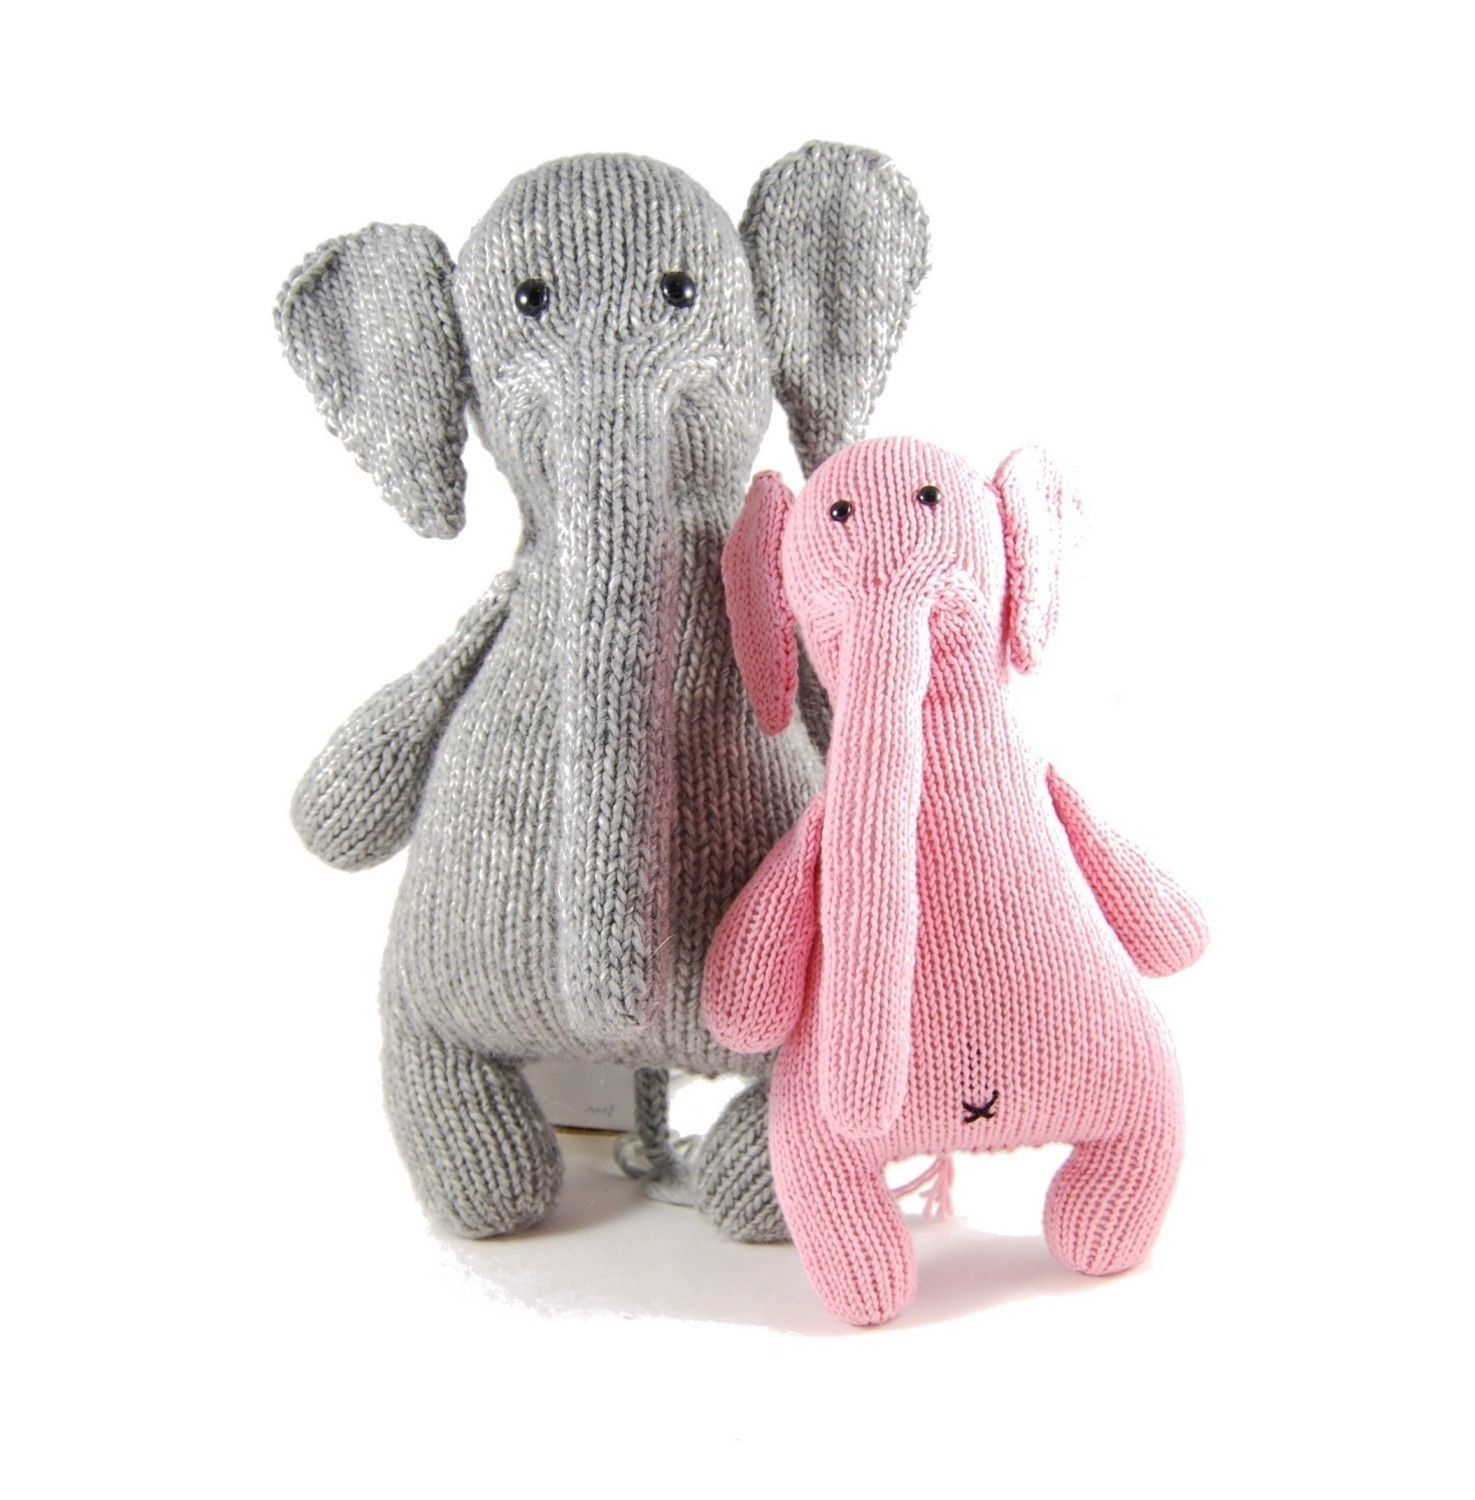 Esther the eccentic elephant knitting pattern by danger crafts esther the eccentic elephant knitting pattern by danger crafts bankloansurffo Images